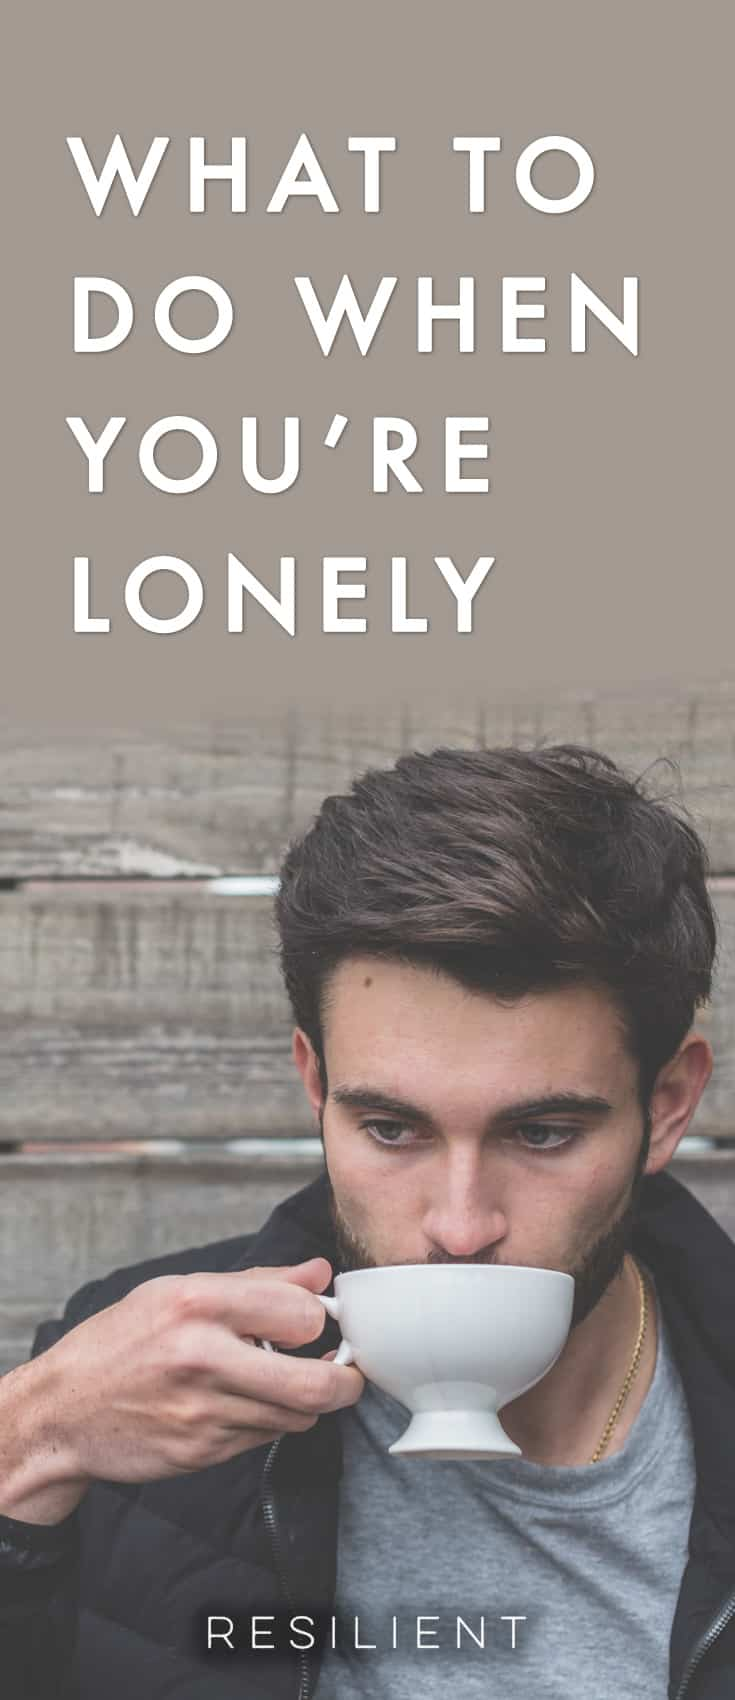 Sometimes we all get lonely. Youmight besoused to having people around you to the point that being by yourselfbecomes strange, quiet, empty. And this feeling of emptiness can be frightening. Here's what to do when you're lonely.